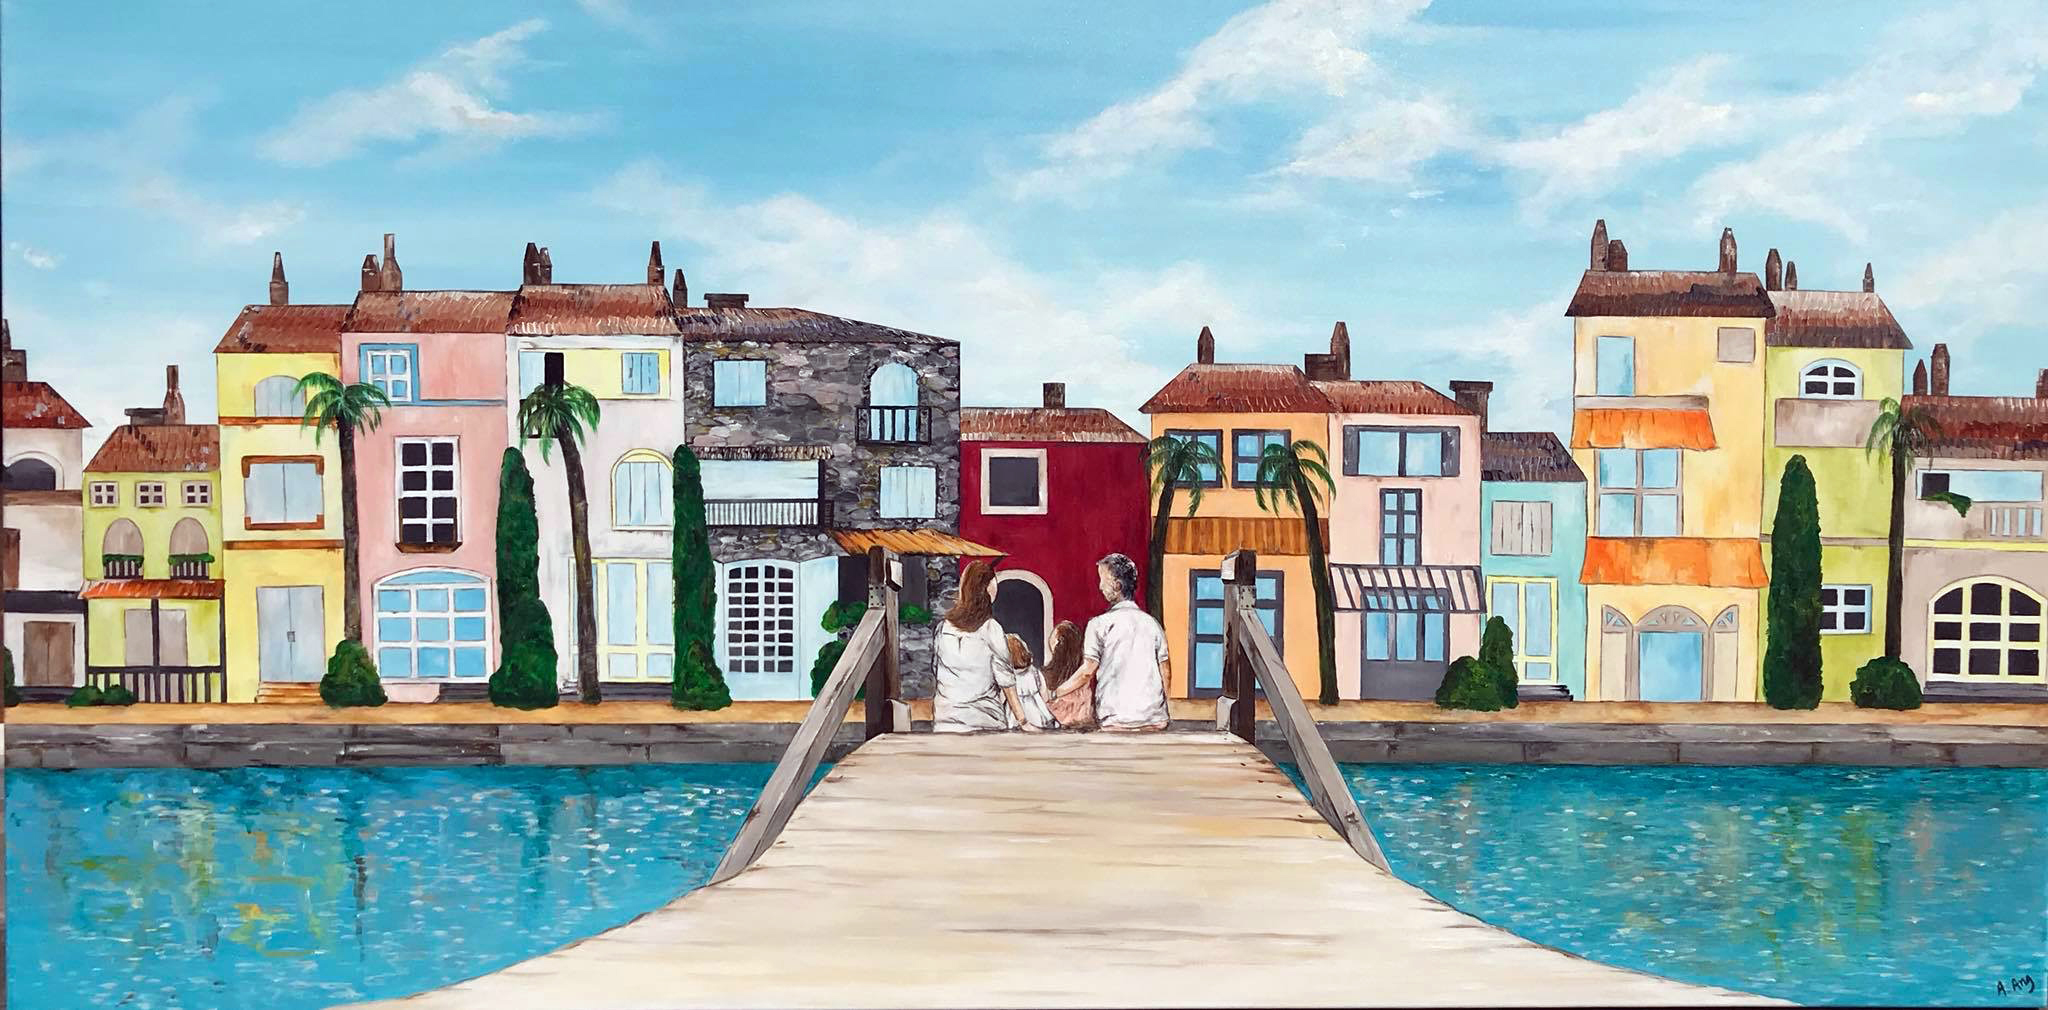 Memories at Port Grimaud, St Tropz (200x100) Commission